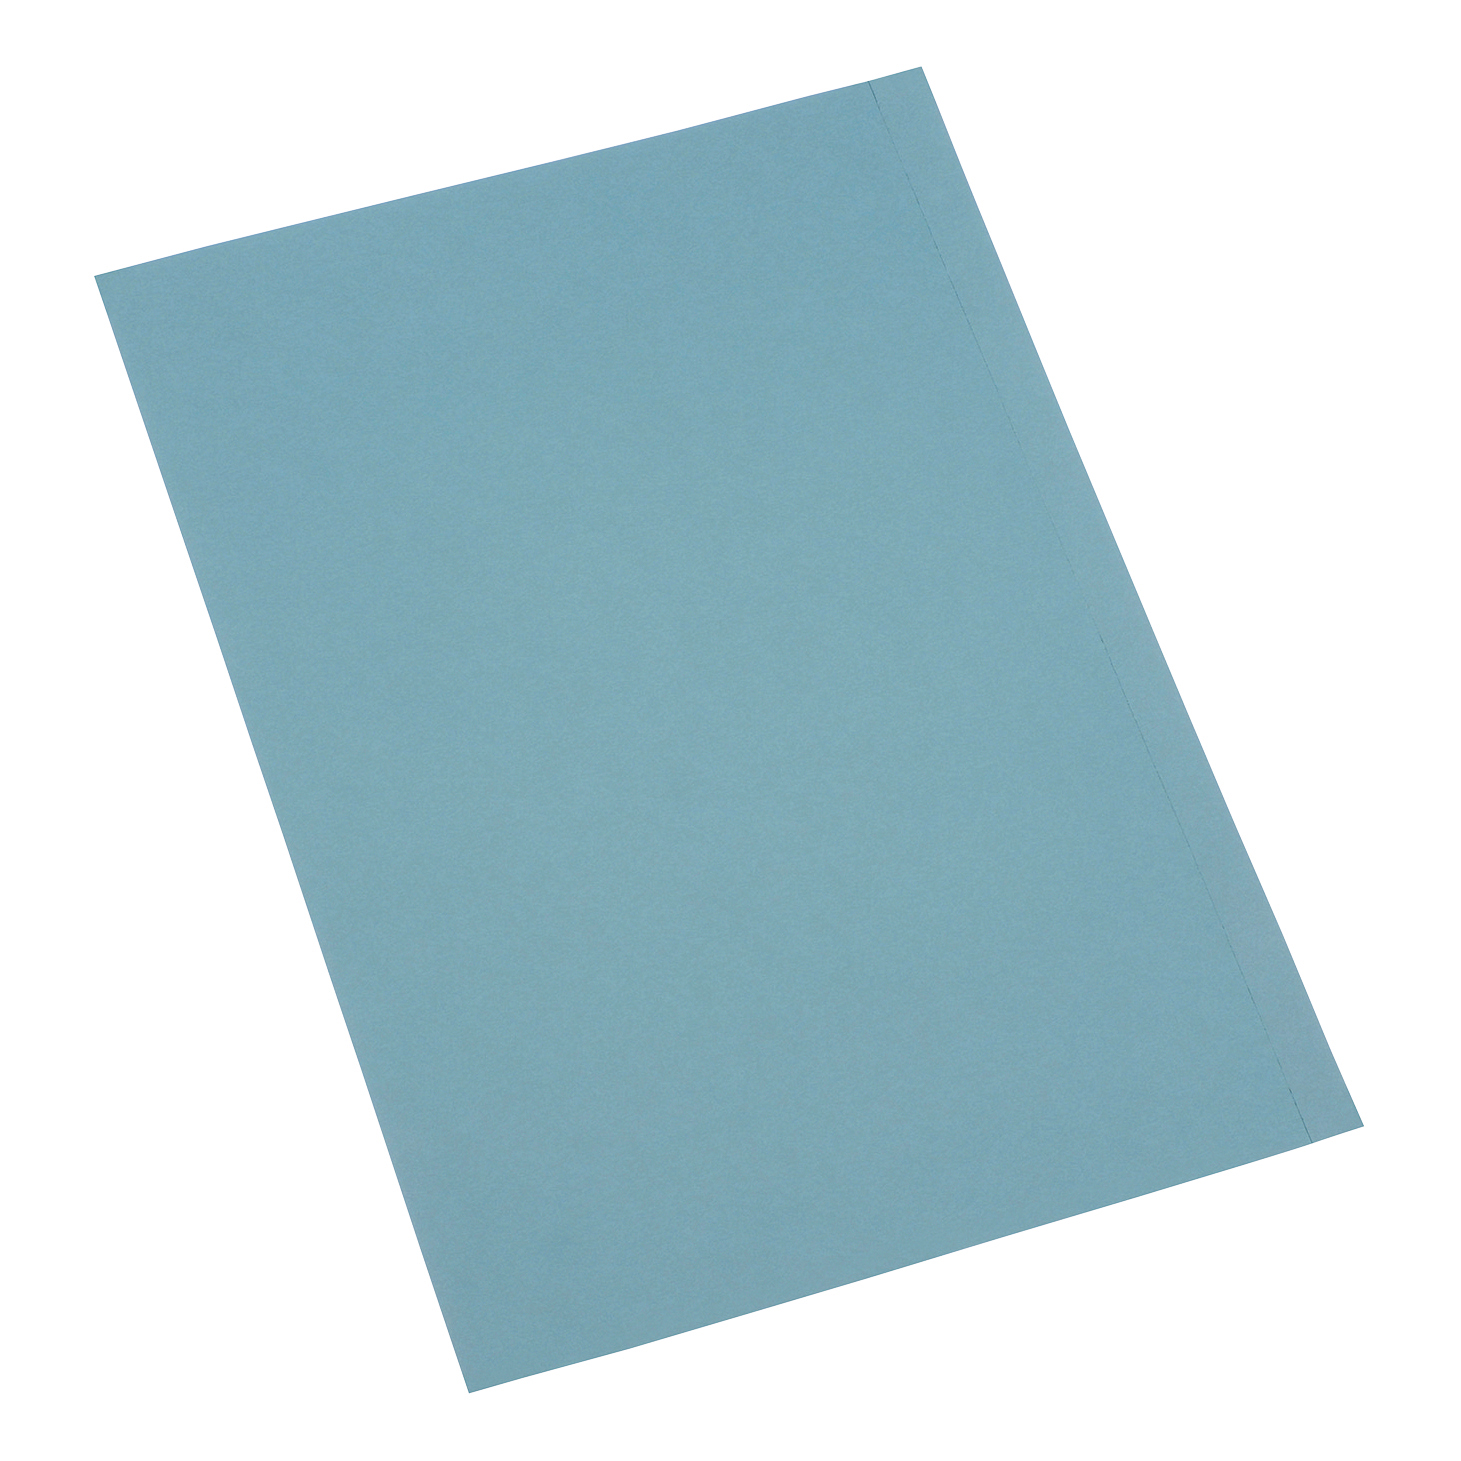 Square Cut Folders 5 Star Office Square Cut Folder Recycled 180gsm Foolscap Blue Pack 100